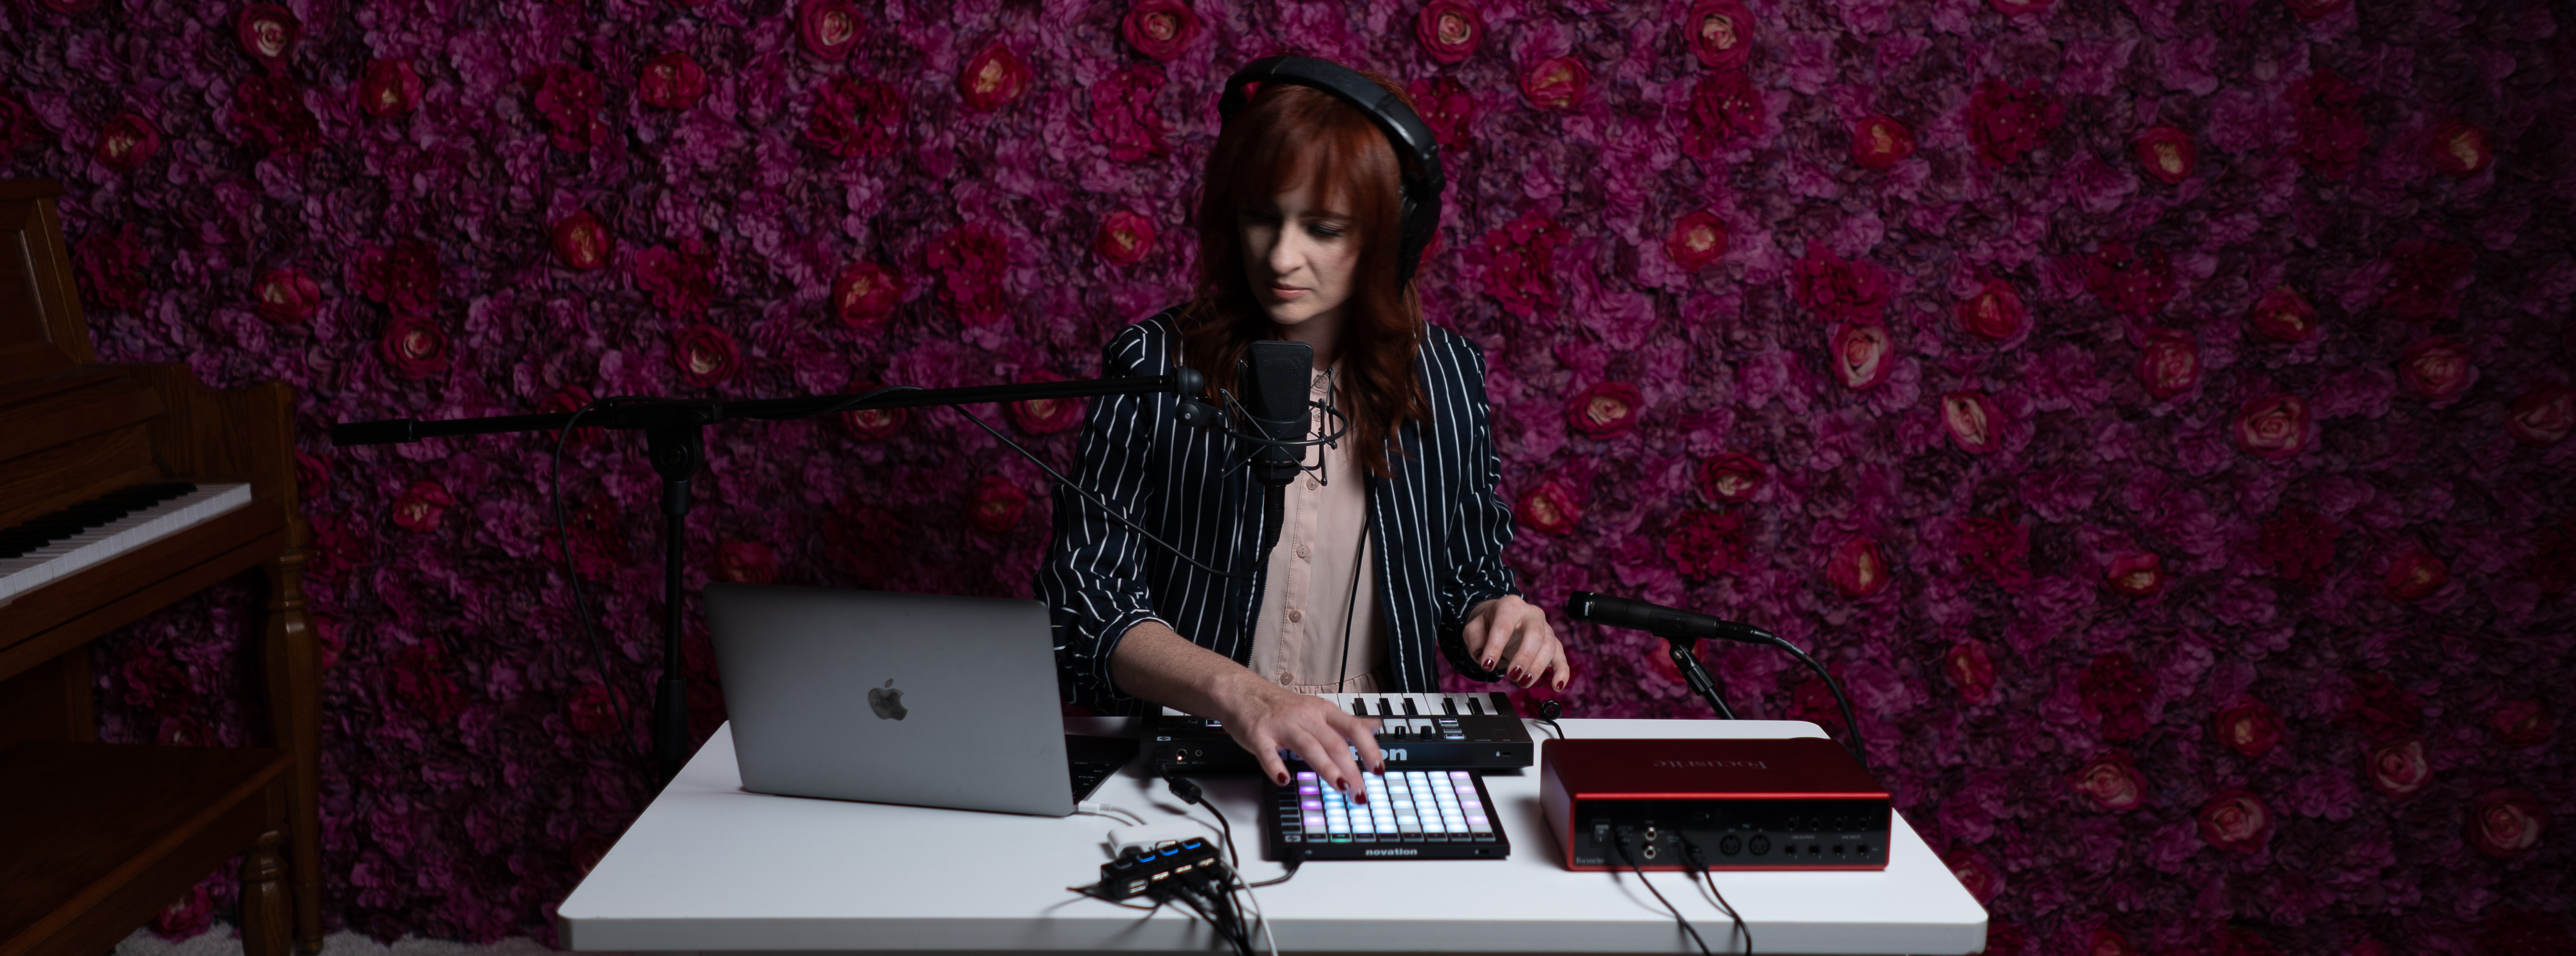 Jess Godwin: A Backing Band at Your Fingertips